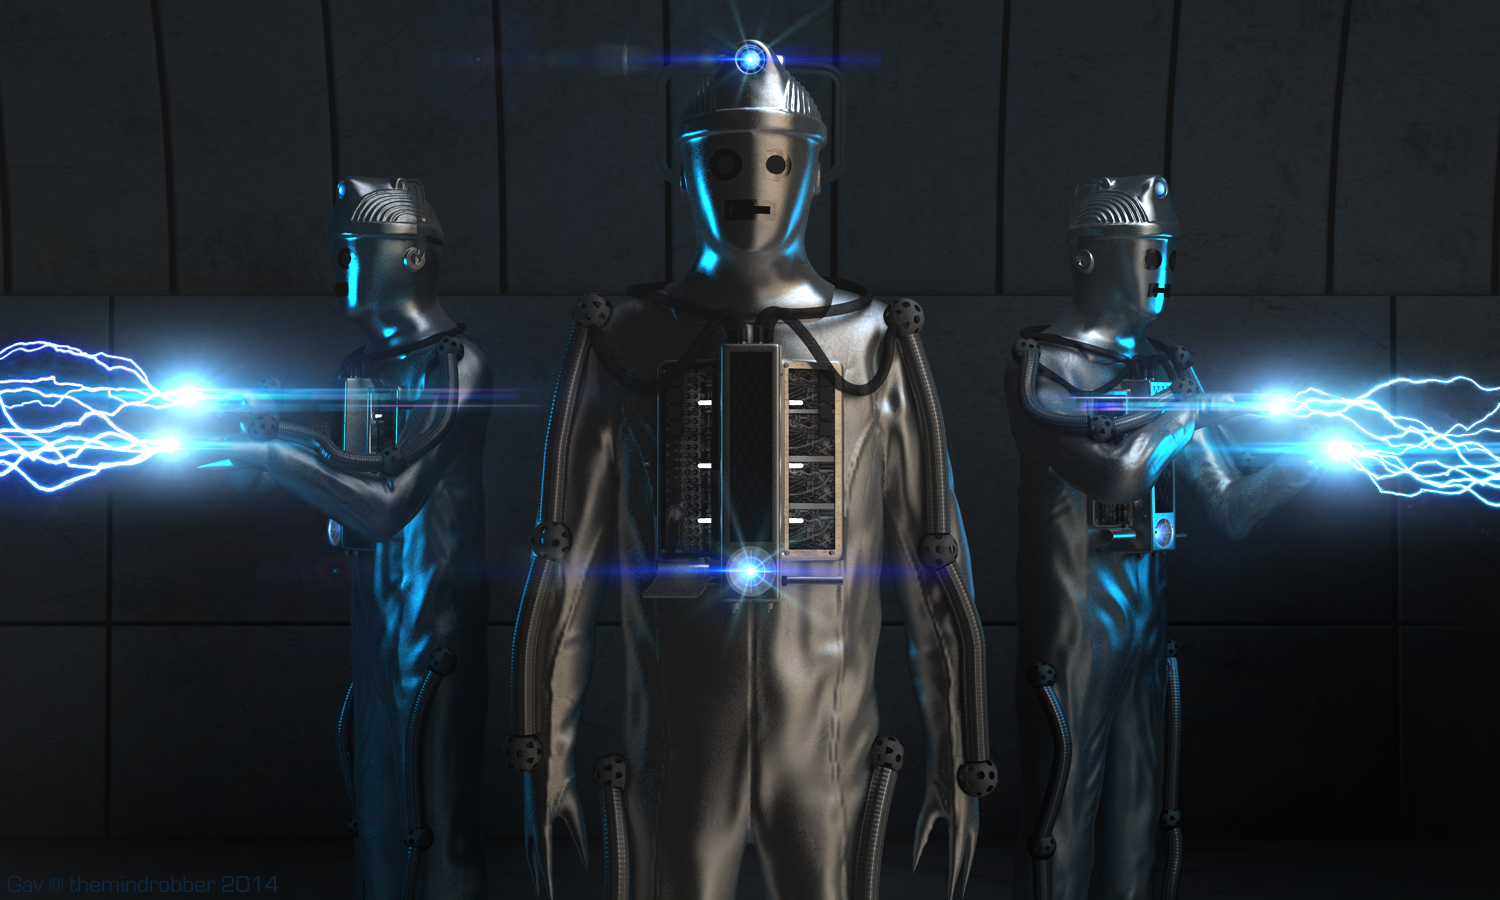 Moonbase Cyberman shoot Electricity Artwork